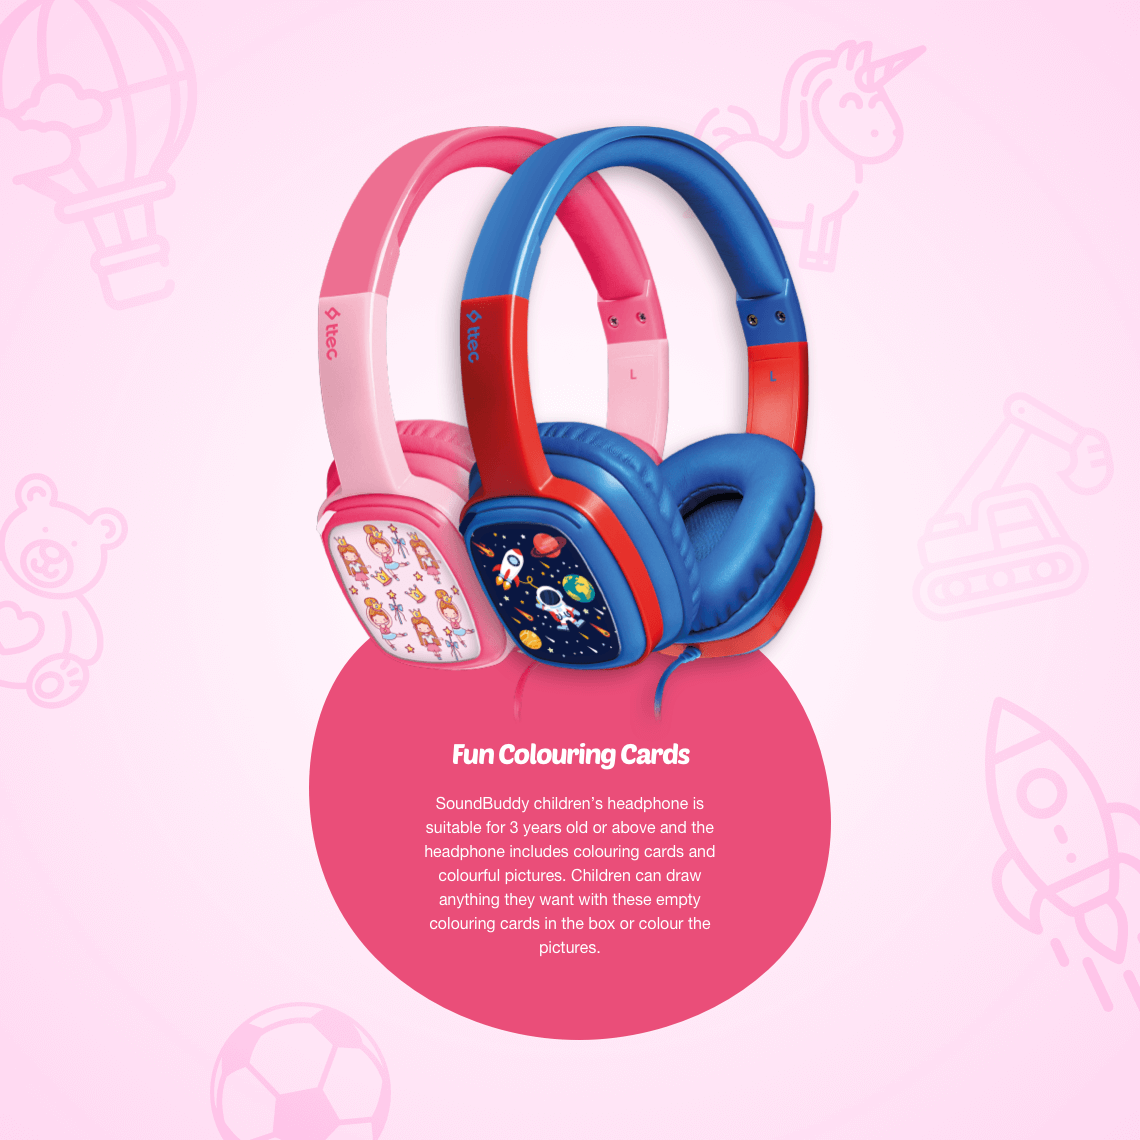 SoundBuddy children's headphone is suitable for 3 years old or above and the headphone includes colouring cards and colourful pictures. Children can draw anything they want with these empty colouring cards in the box or colour the pictures.